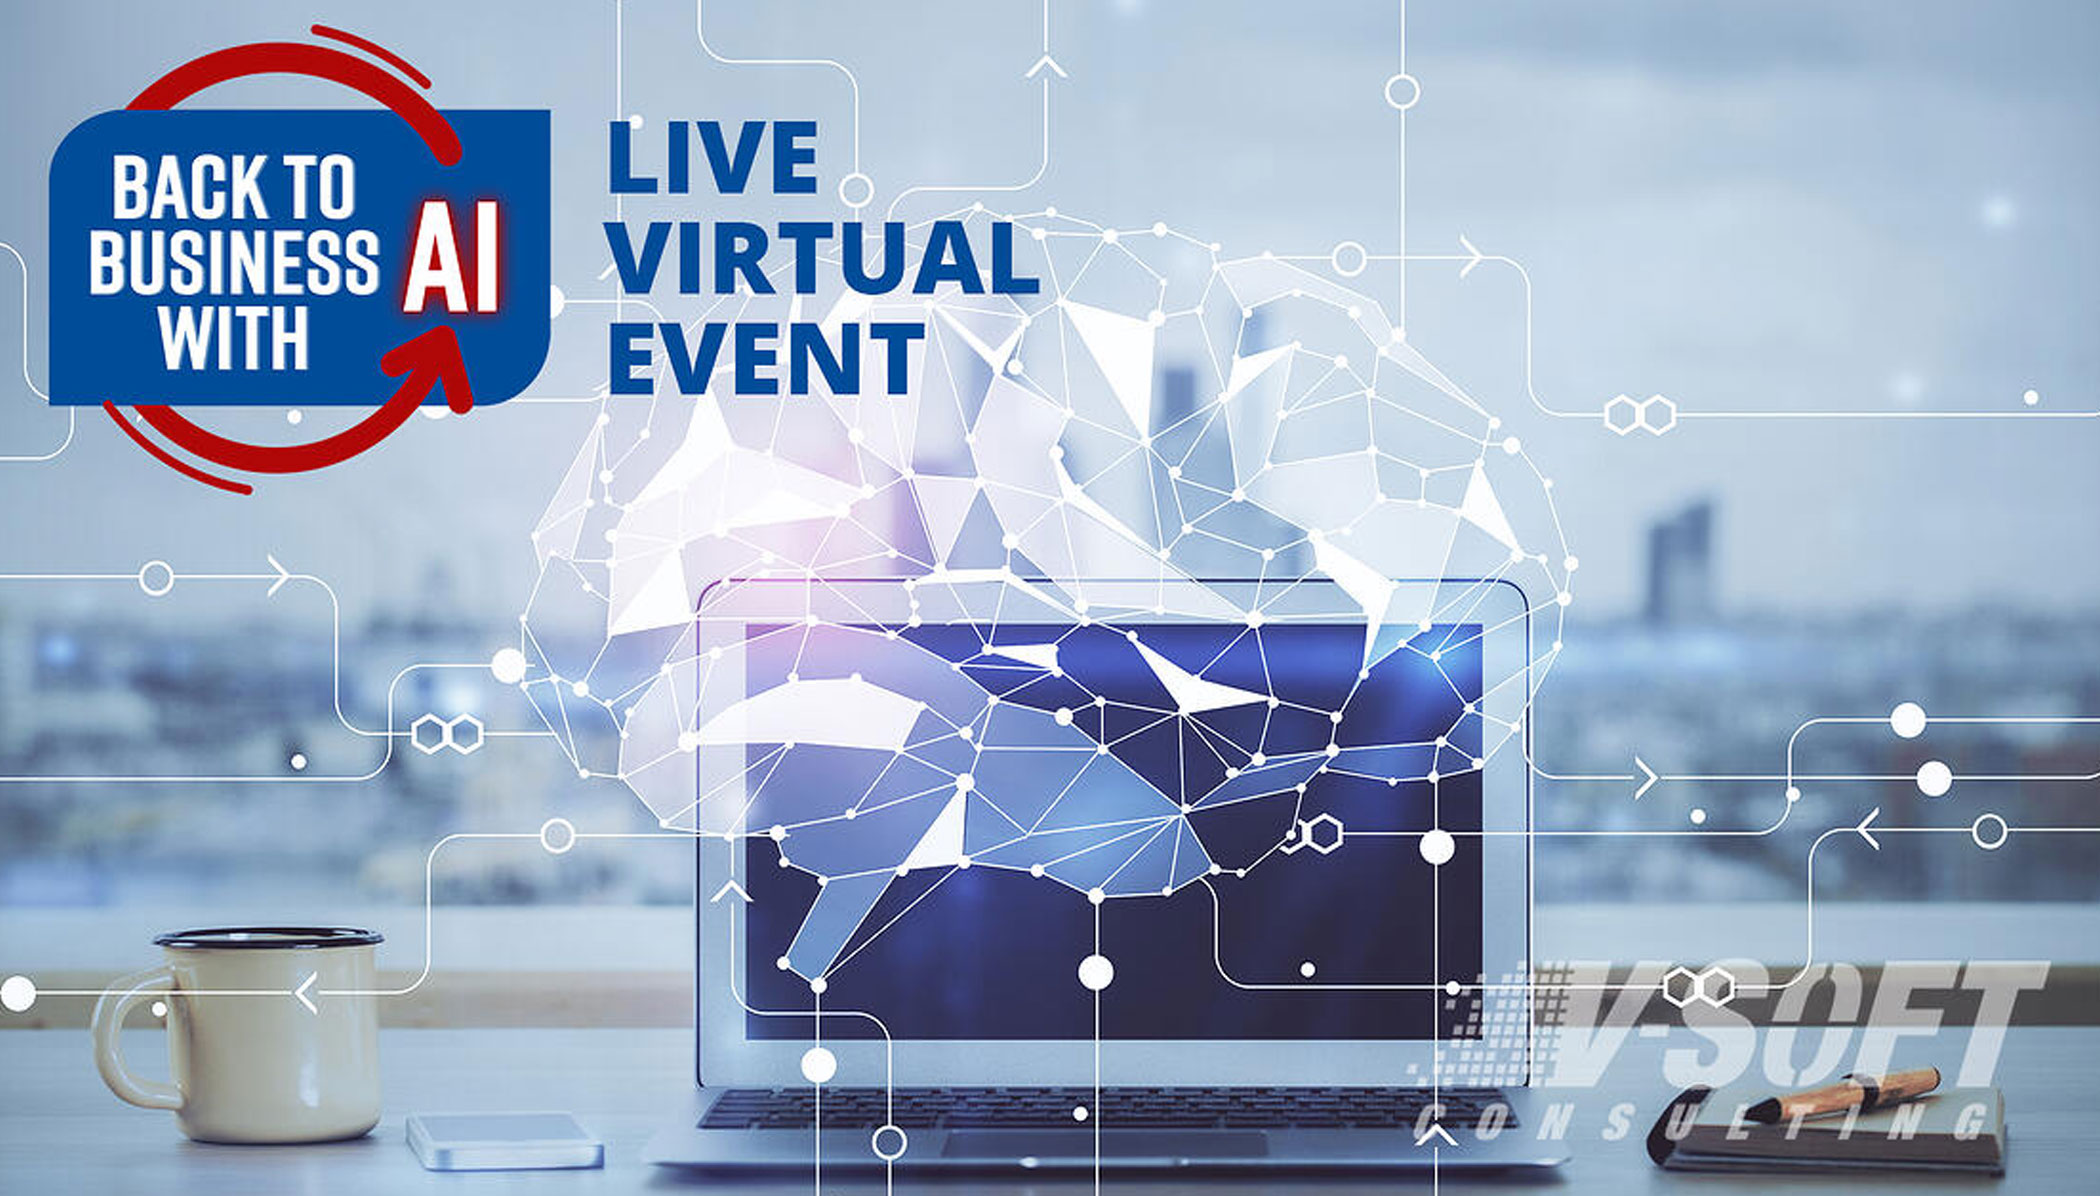 Back to Business with AI - a Live, Virtual Event!